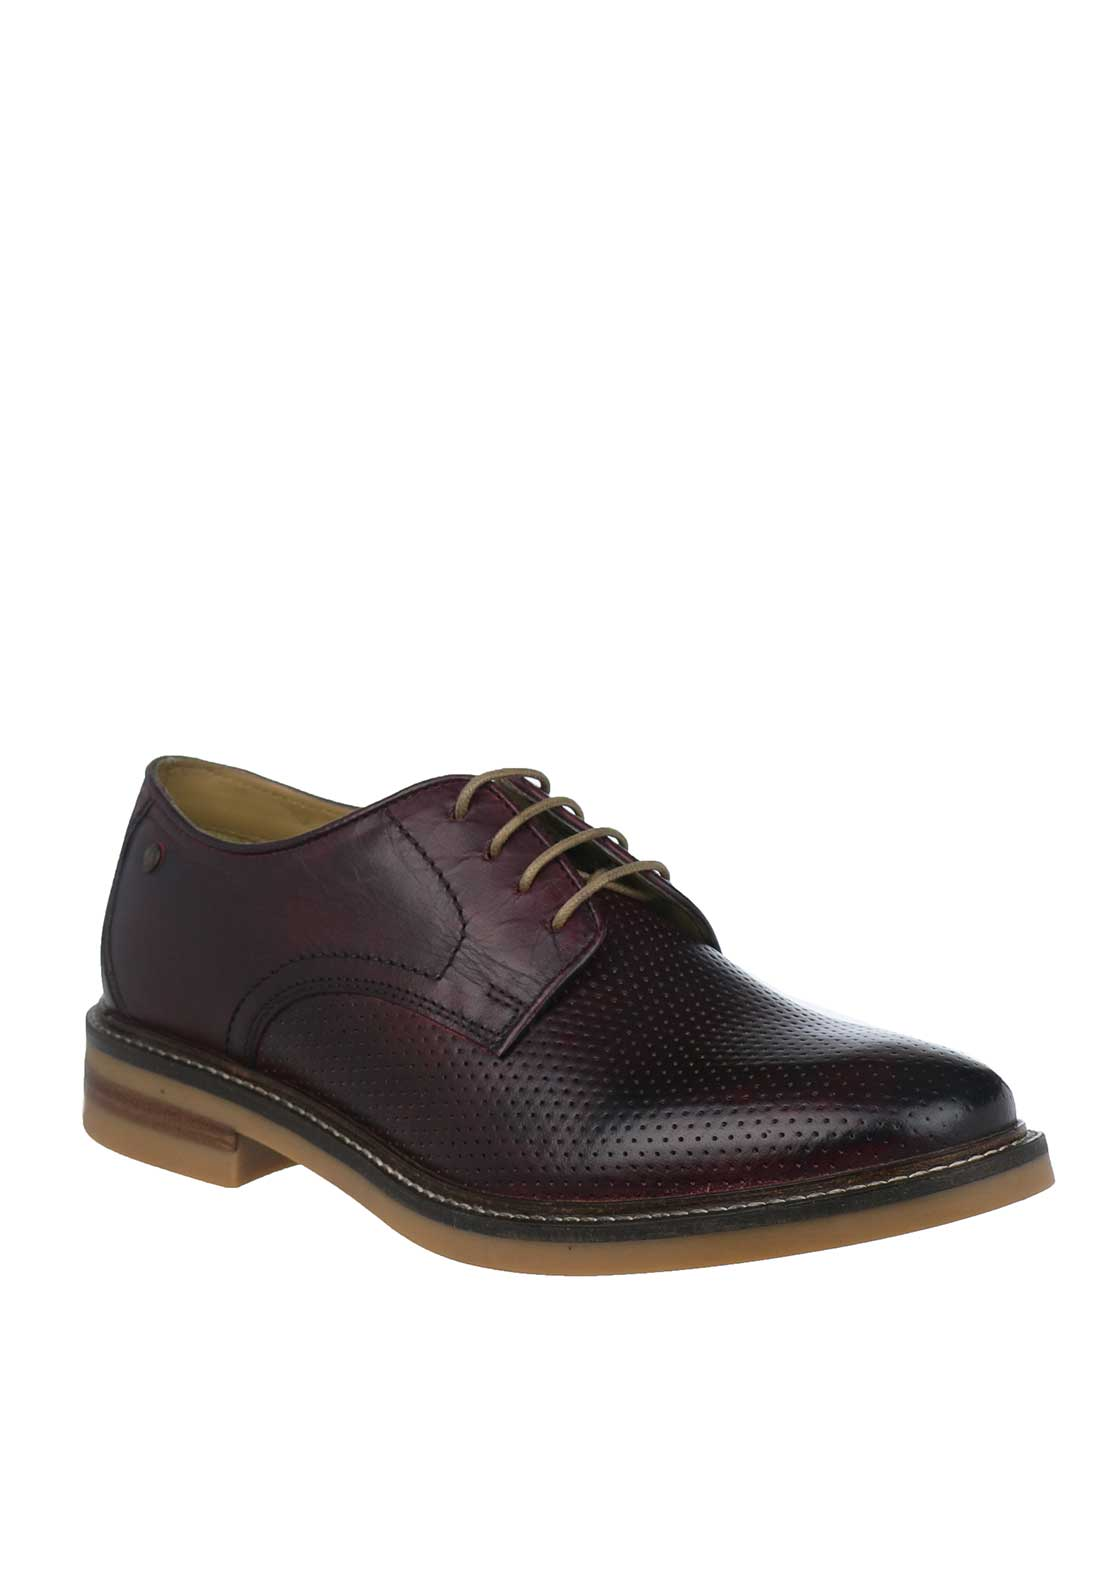 Base London Stanford Washed Leather Shoes, Bordeaux